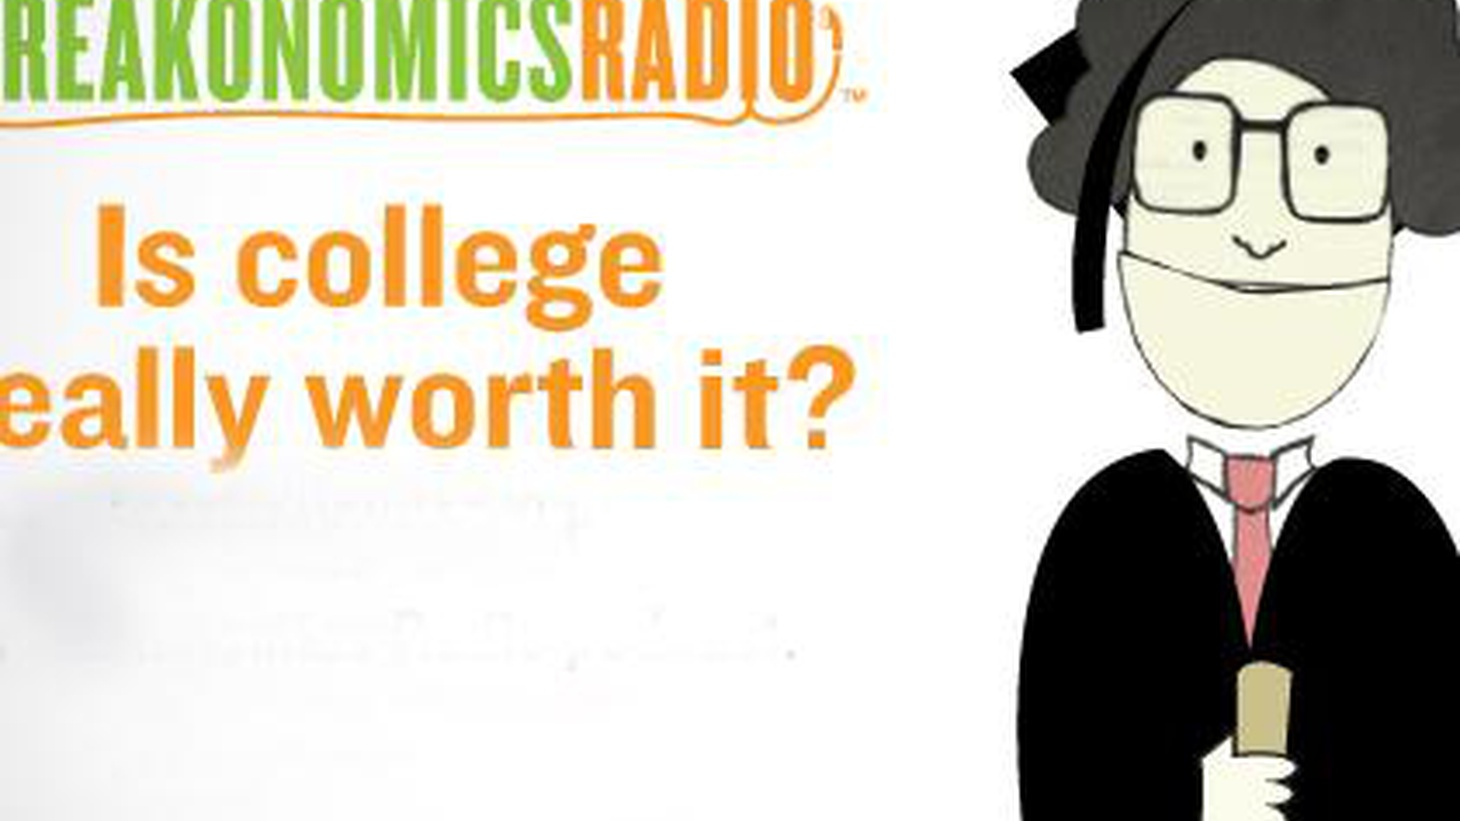 We explore the value of a college degree and the market for fake diplomas. Plus a look at tuition costs and how the college experience makes people so much better off.